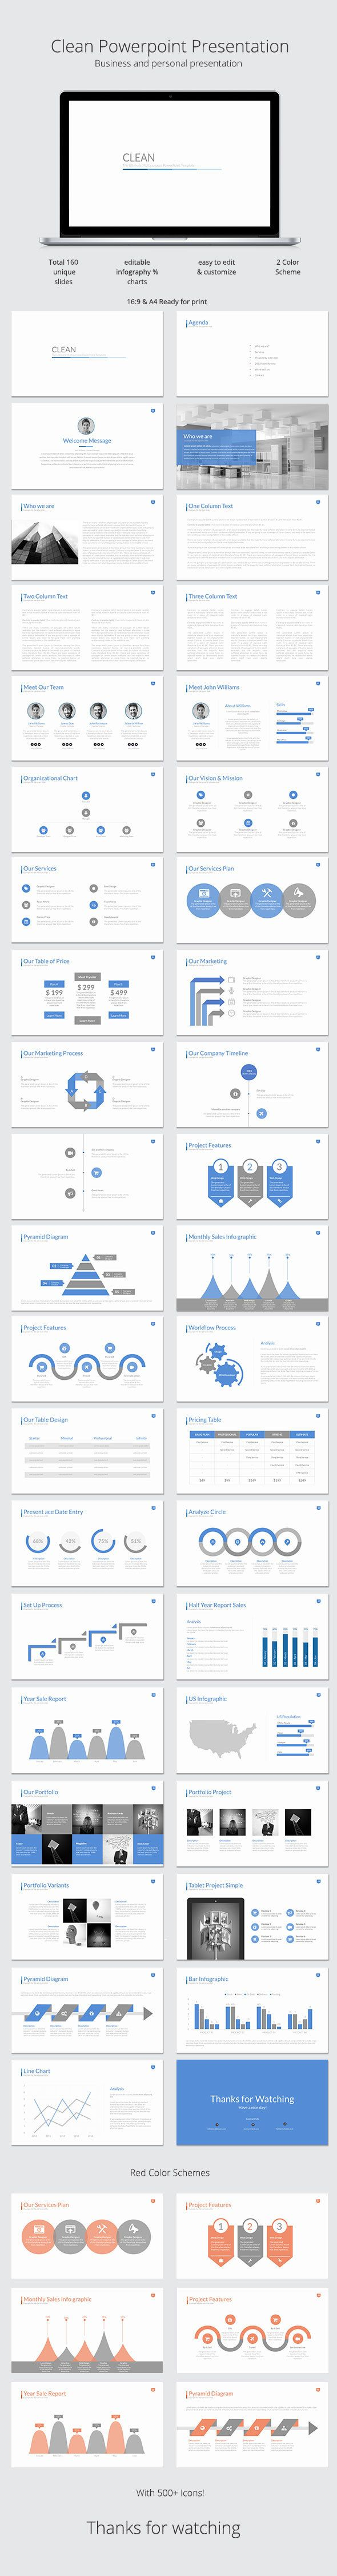 Coolmathgamesus  Nice  Ideas About Powerpoint Presentations On Pinterest With Glamorous Clean Powerpoint Template With Nice Louis Pasteur Powerpoint Also Fact And Opinion Powerpoints In Addition Powerpoint Background Professional And Respiration Powerpoint As Well As Powerpoint Maker Free Online No Download Additionally Free Download Of Powerpoint Templates And Backgrounds From Pinterestcom With Coolmathgamesus  Glamorous  Ideas About Powerpoint Presentations On Pinterest With Nice Clean Powerpoint Template And Nice Louis Pasteur Powerpoint Also Fact And Opinion Powerpoints In Addition Powerpoint Background Professional From Pinterestcom